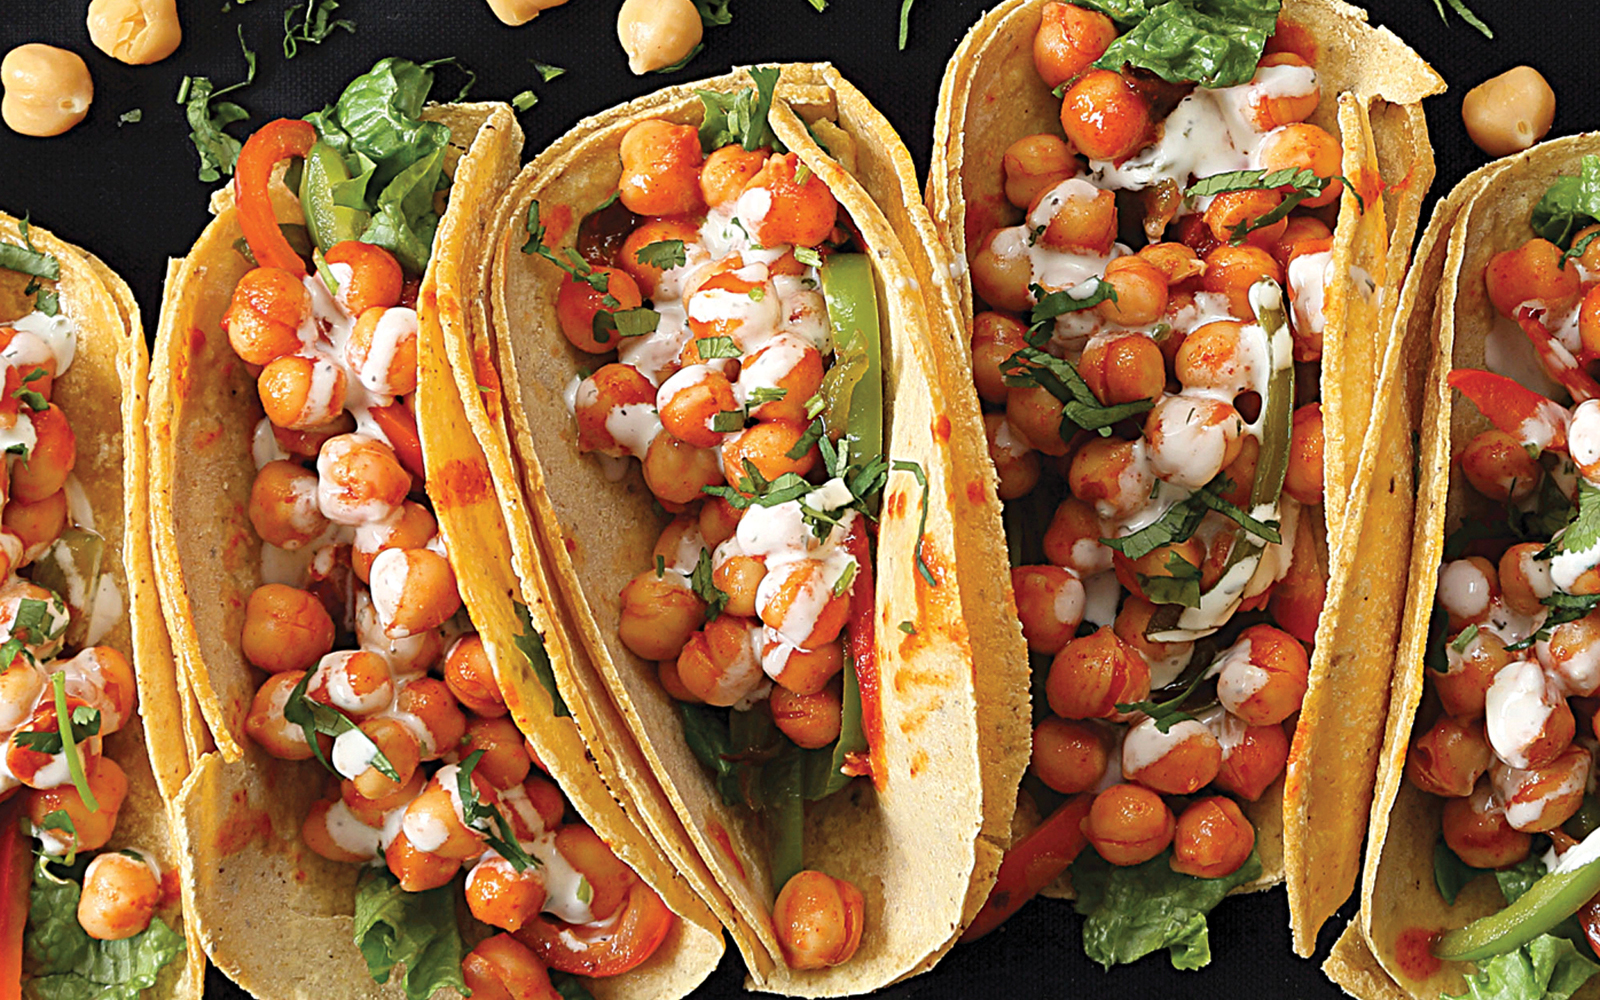 Vegan Gluten-Free Buffalo Chickpea Tacos With Celery Ranch Sauce